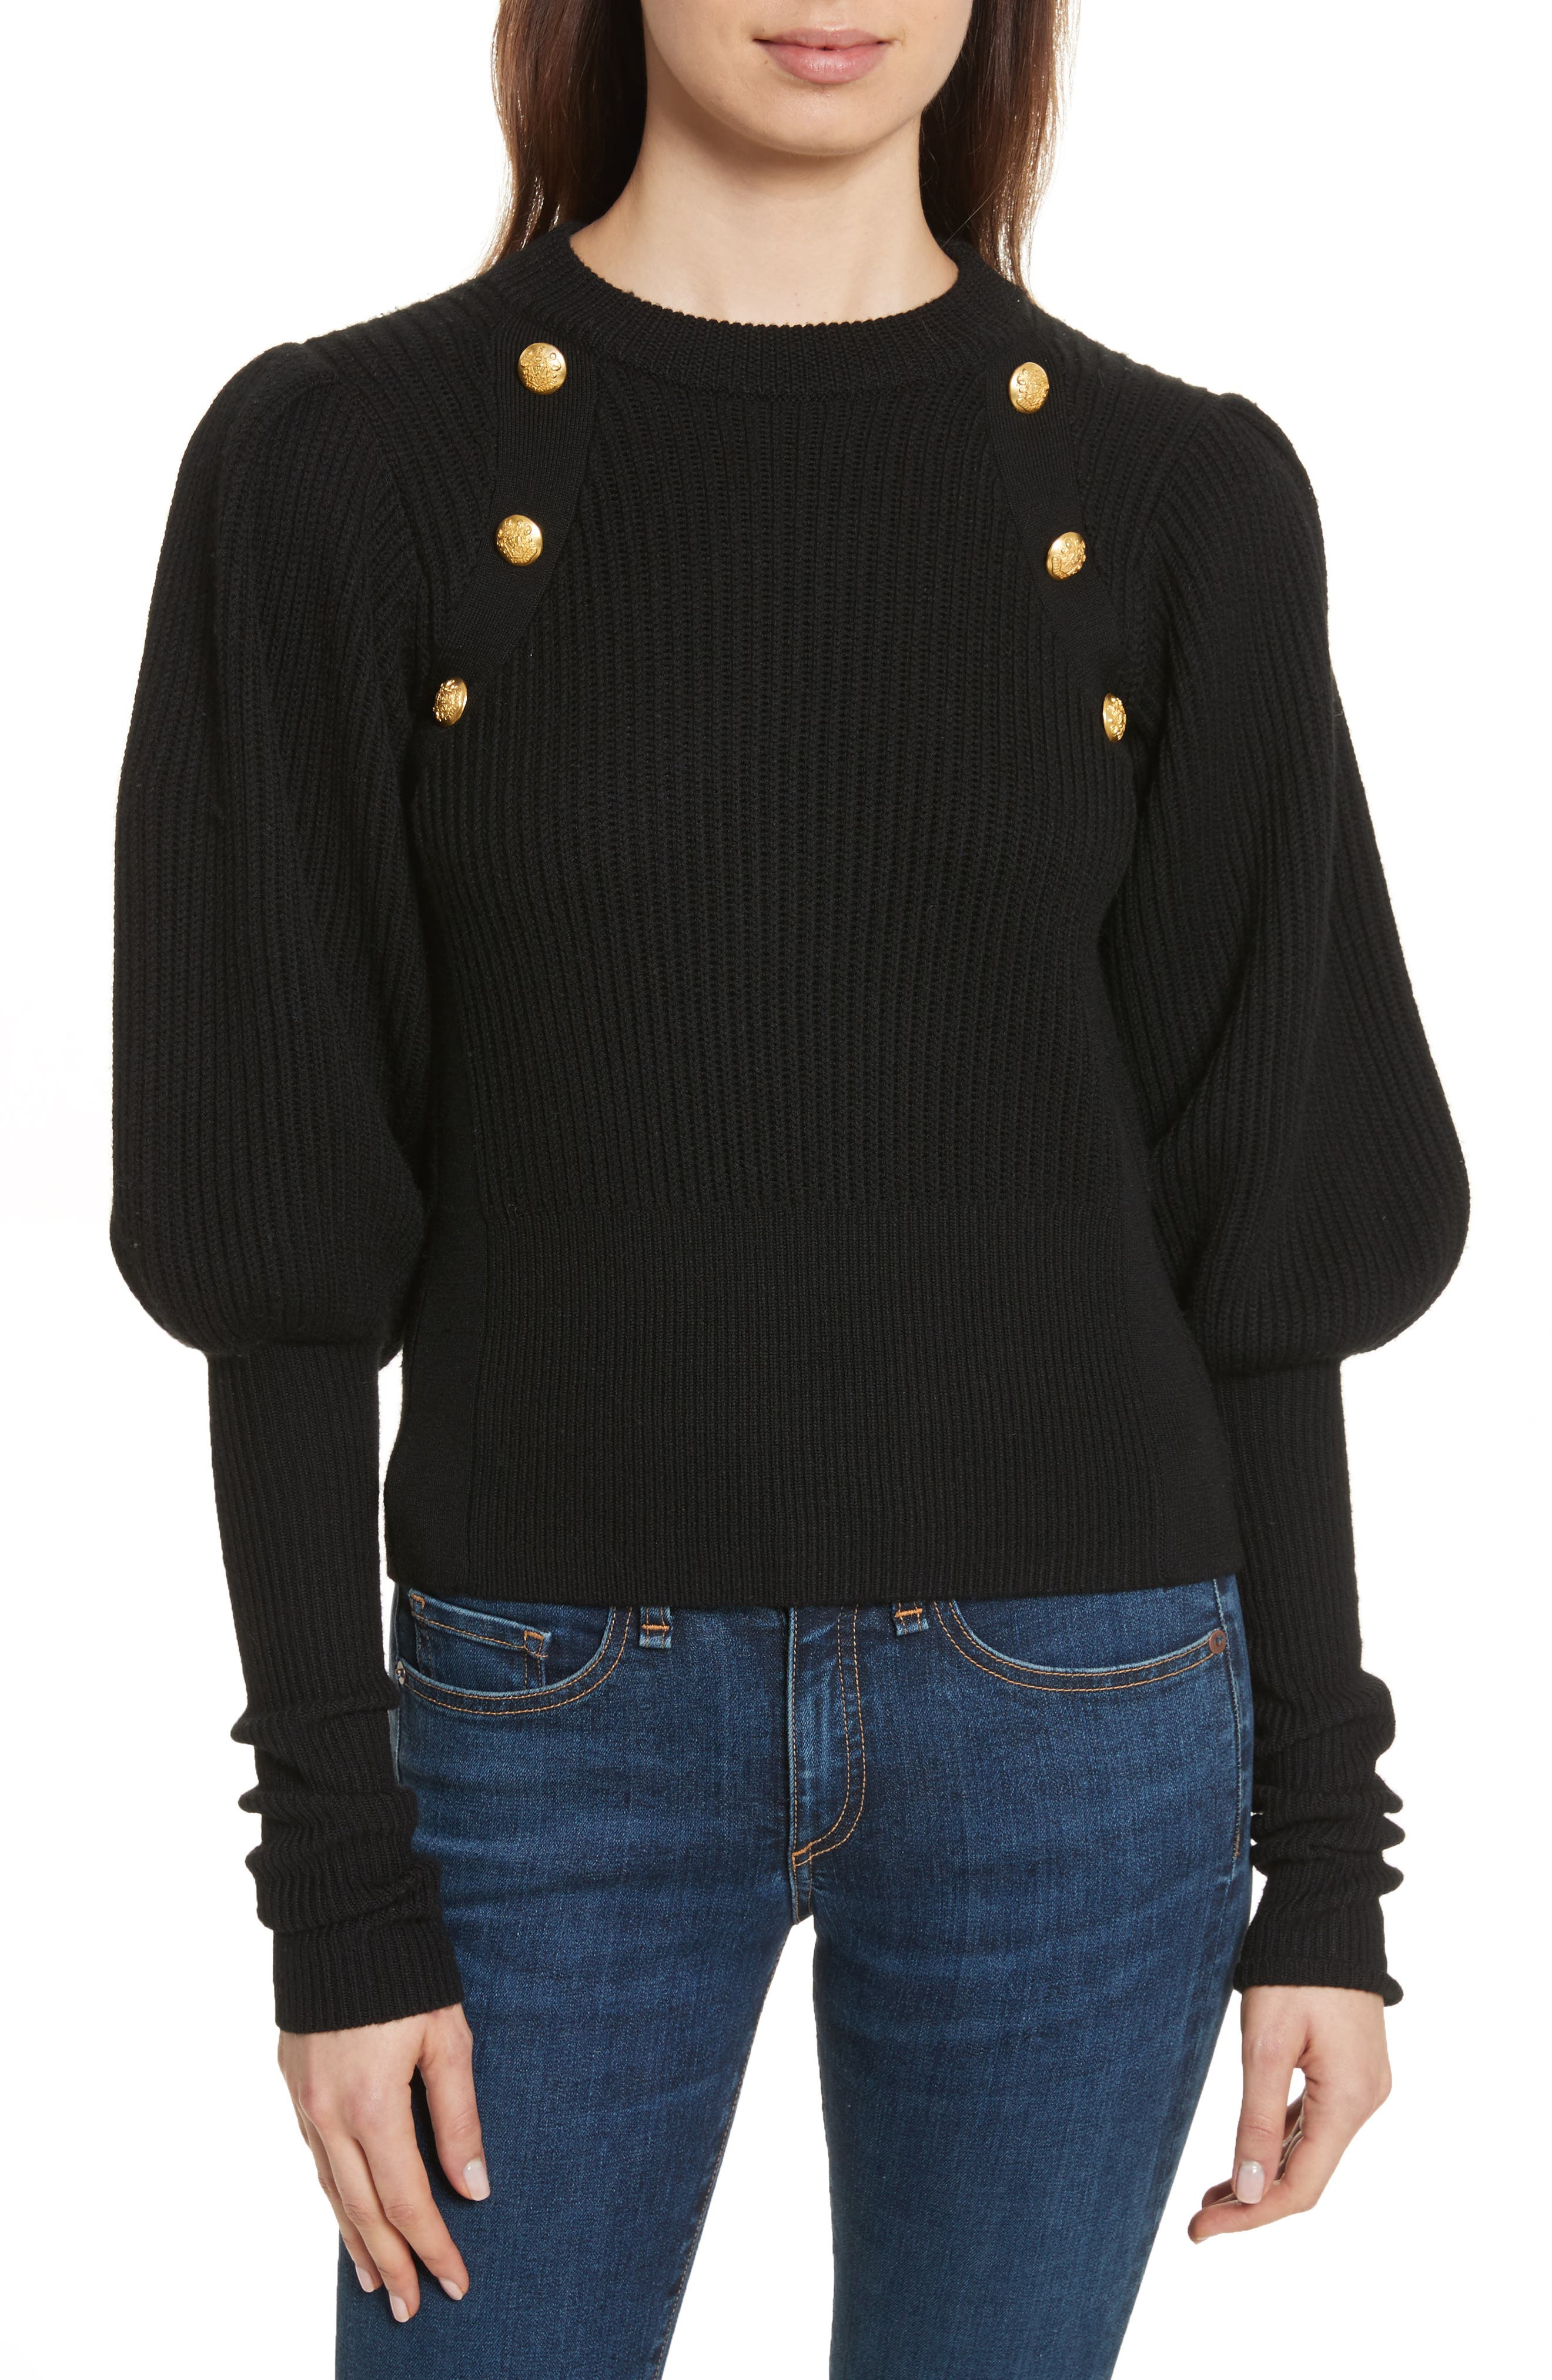 Veronica Beard Jude Leg of Mutton Sleeve Sweater